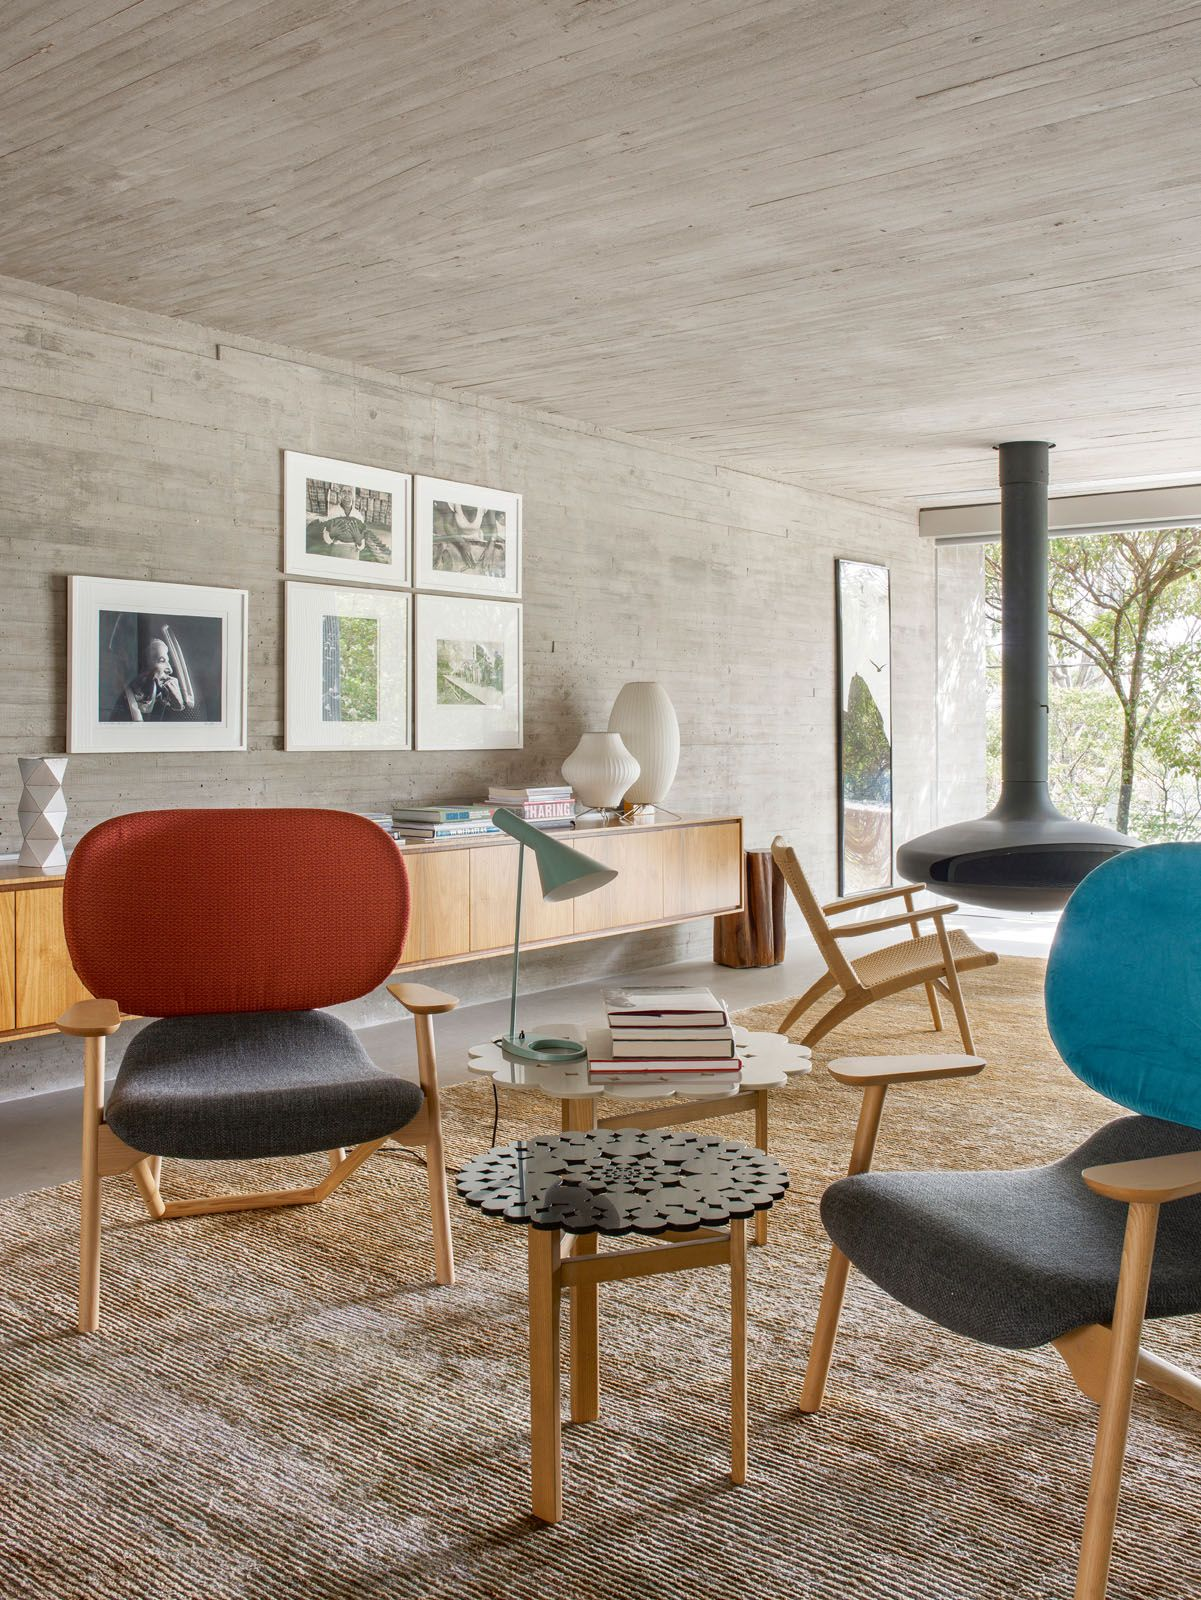 This section of the living area features a sideboard by Studio MK27, table lamps by George Nelson and a pair of Moroso Klara armchairs by Patricia Urquiola